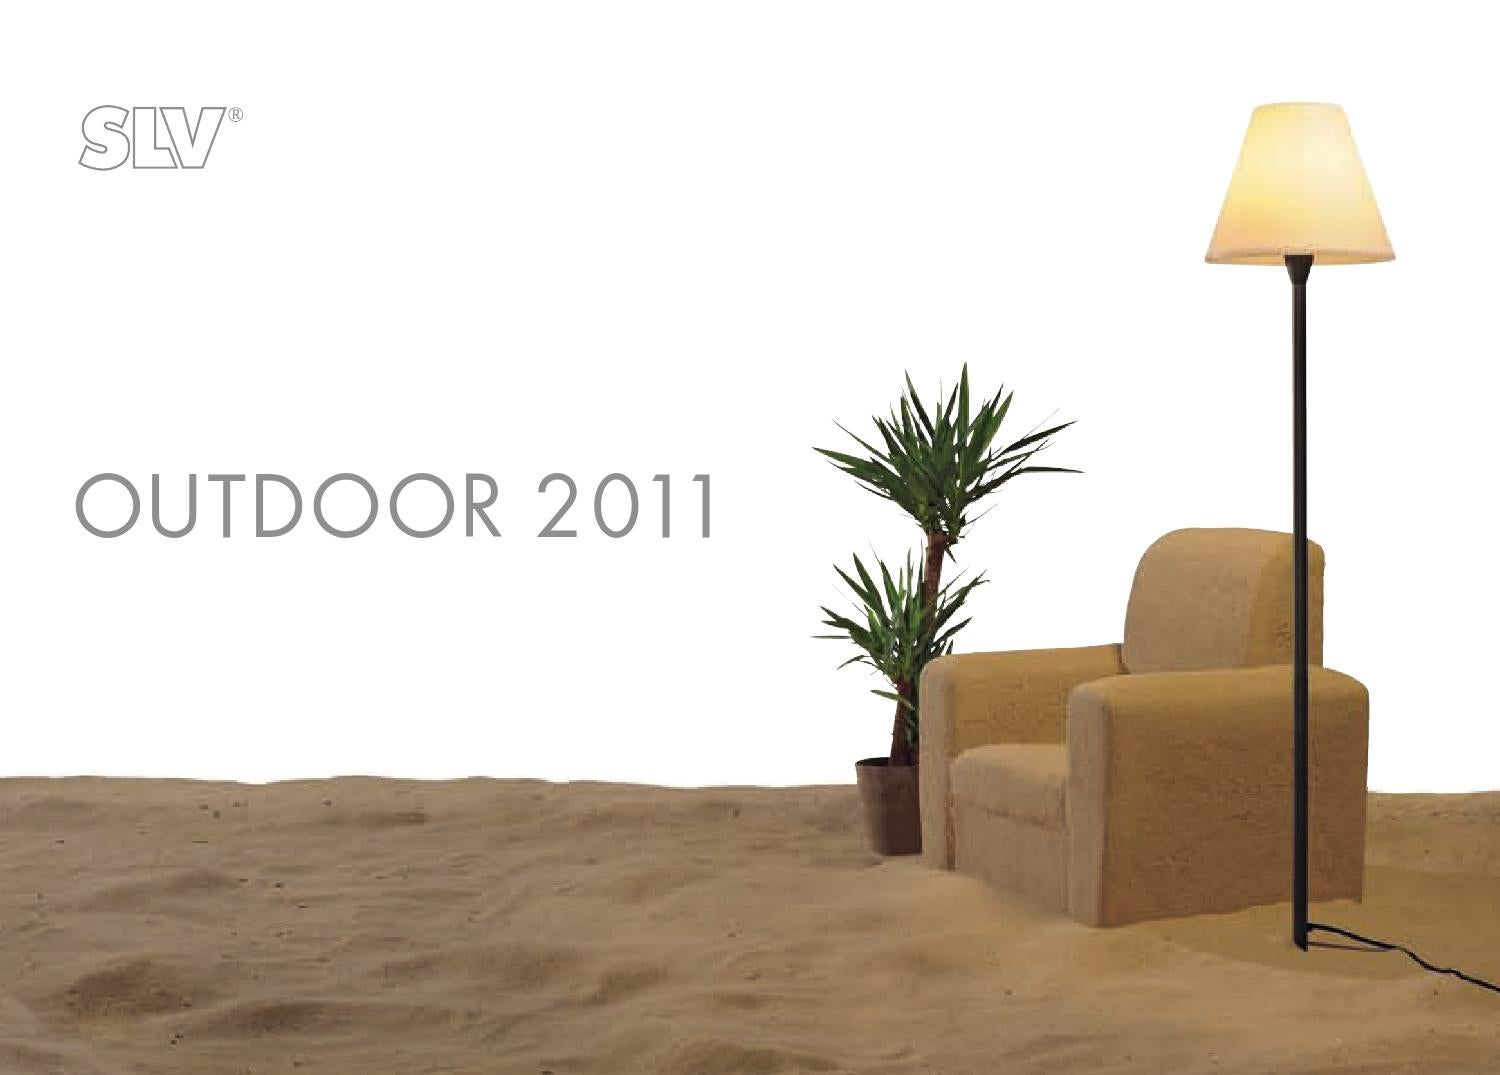 slv outdoor 2011 by issuu. Black Bedroom Furniture Sets. Home Design Ideas